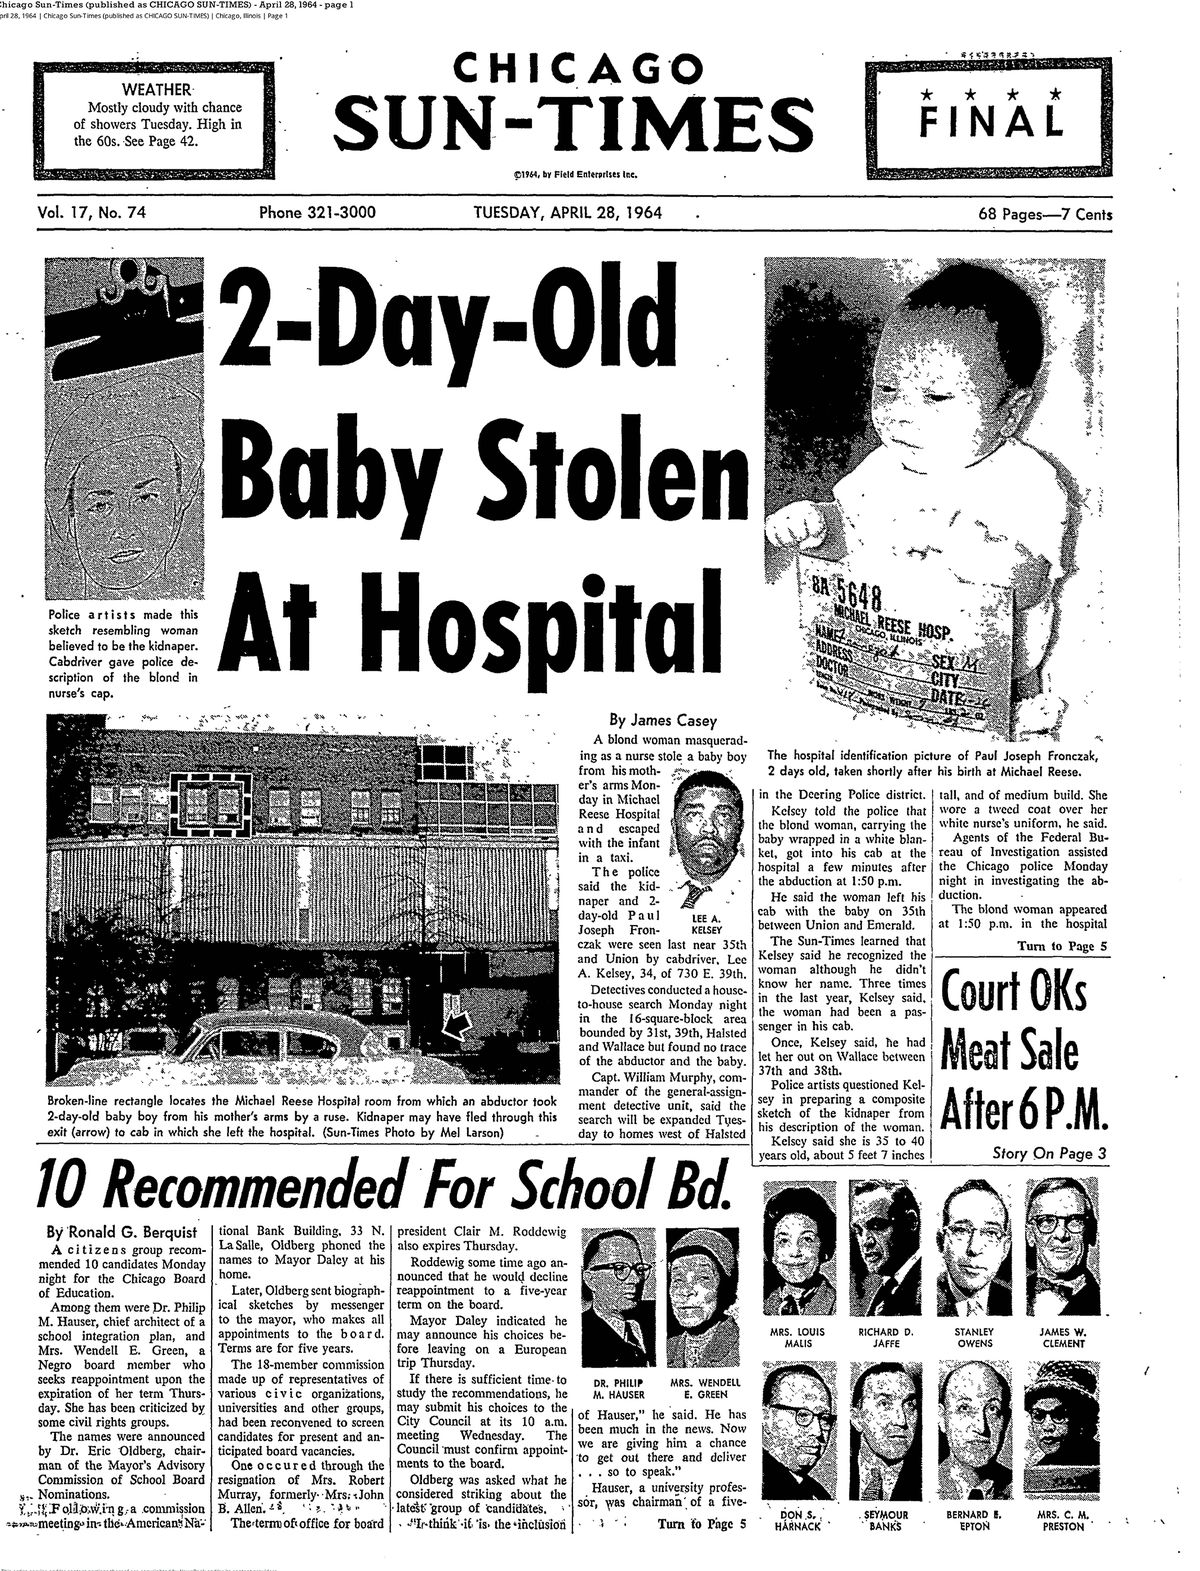 Chicago Sun-Times front-page coverage on the 1964 kidnapping of baby Paul Fronczak from Michael Reese Hospital.